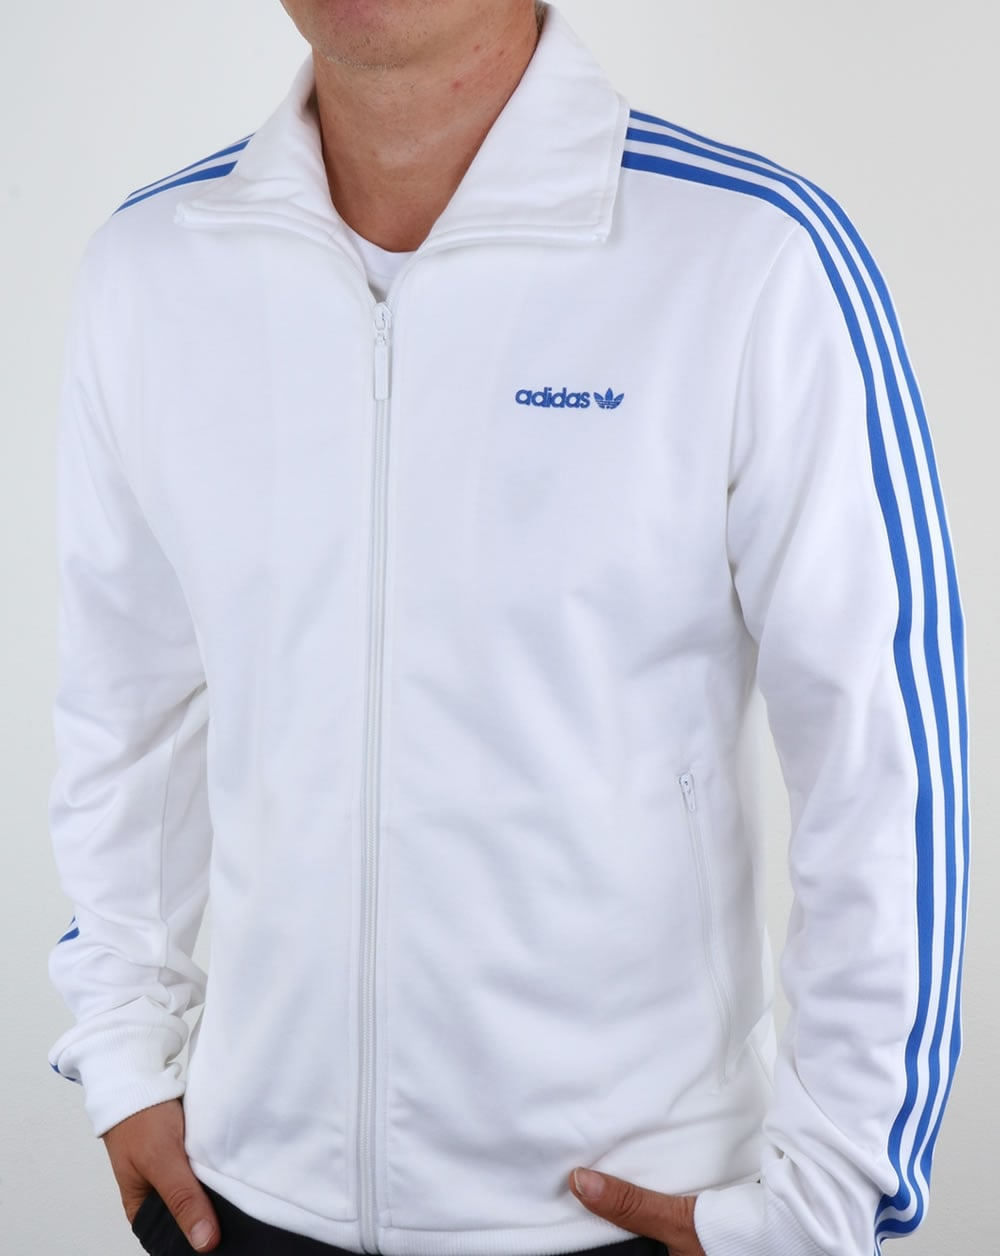 Adidas Originals Beckenbauer Track Top White Blue 18ae9ecebe